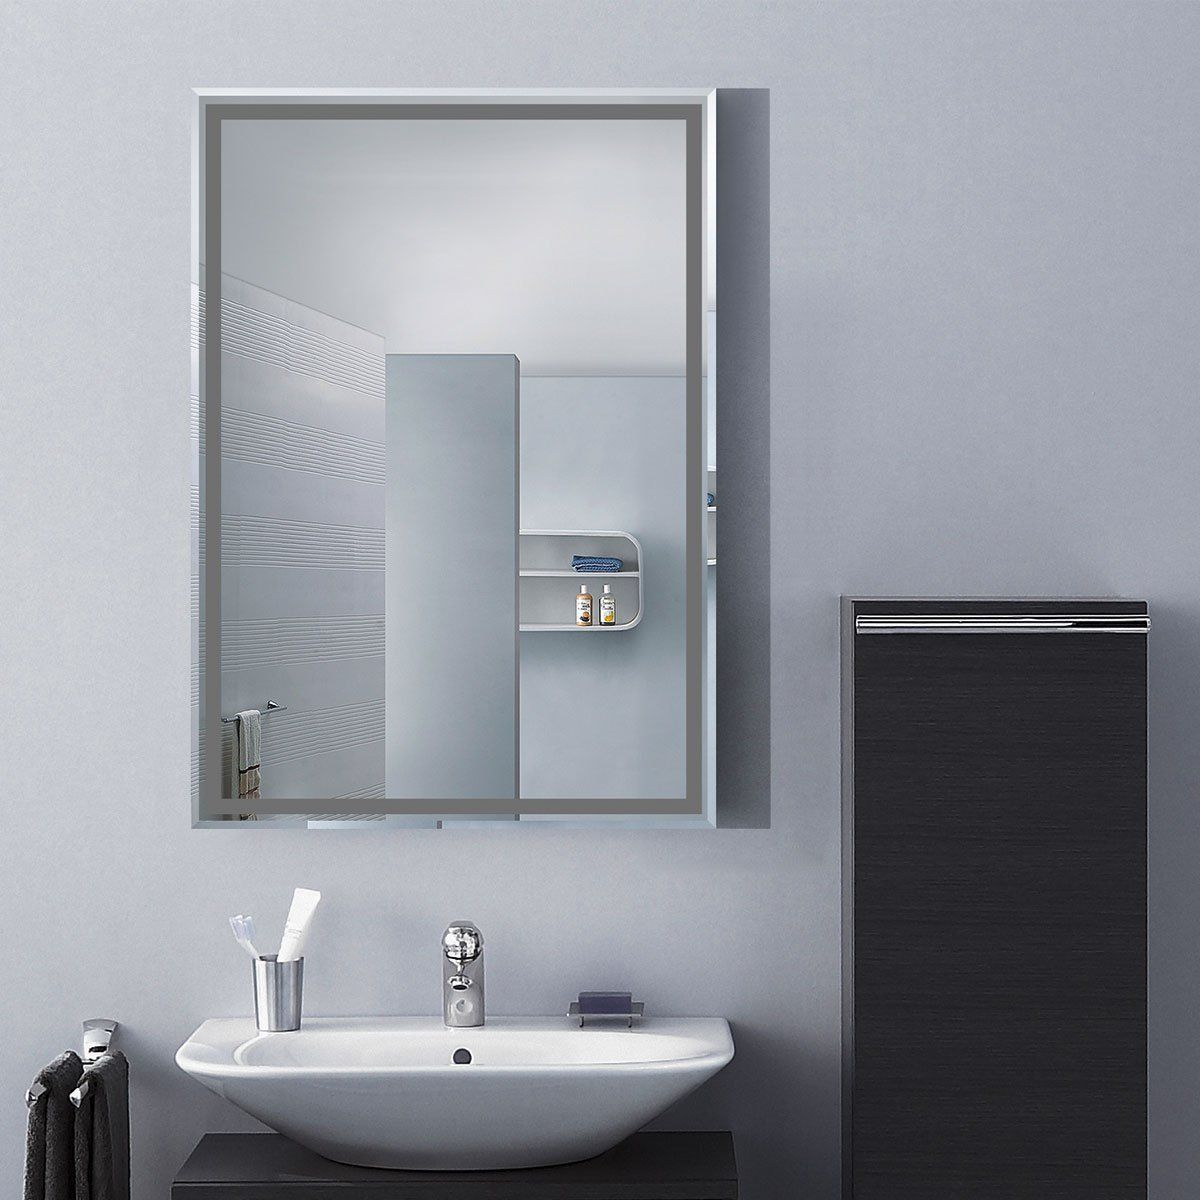 Decoraport 28 20 Frameless Wall Mounted Bathroom Silvered Mirror Rectangle Vertical Vanity Mirror A C22 Floating Shelves Bathroom Led Mirror Bathroom Mirror